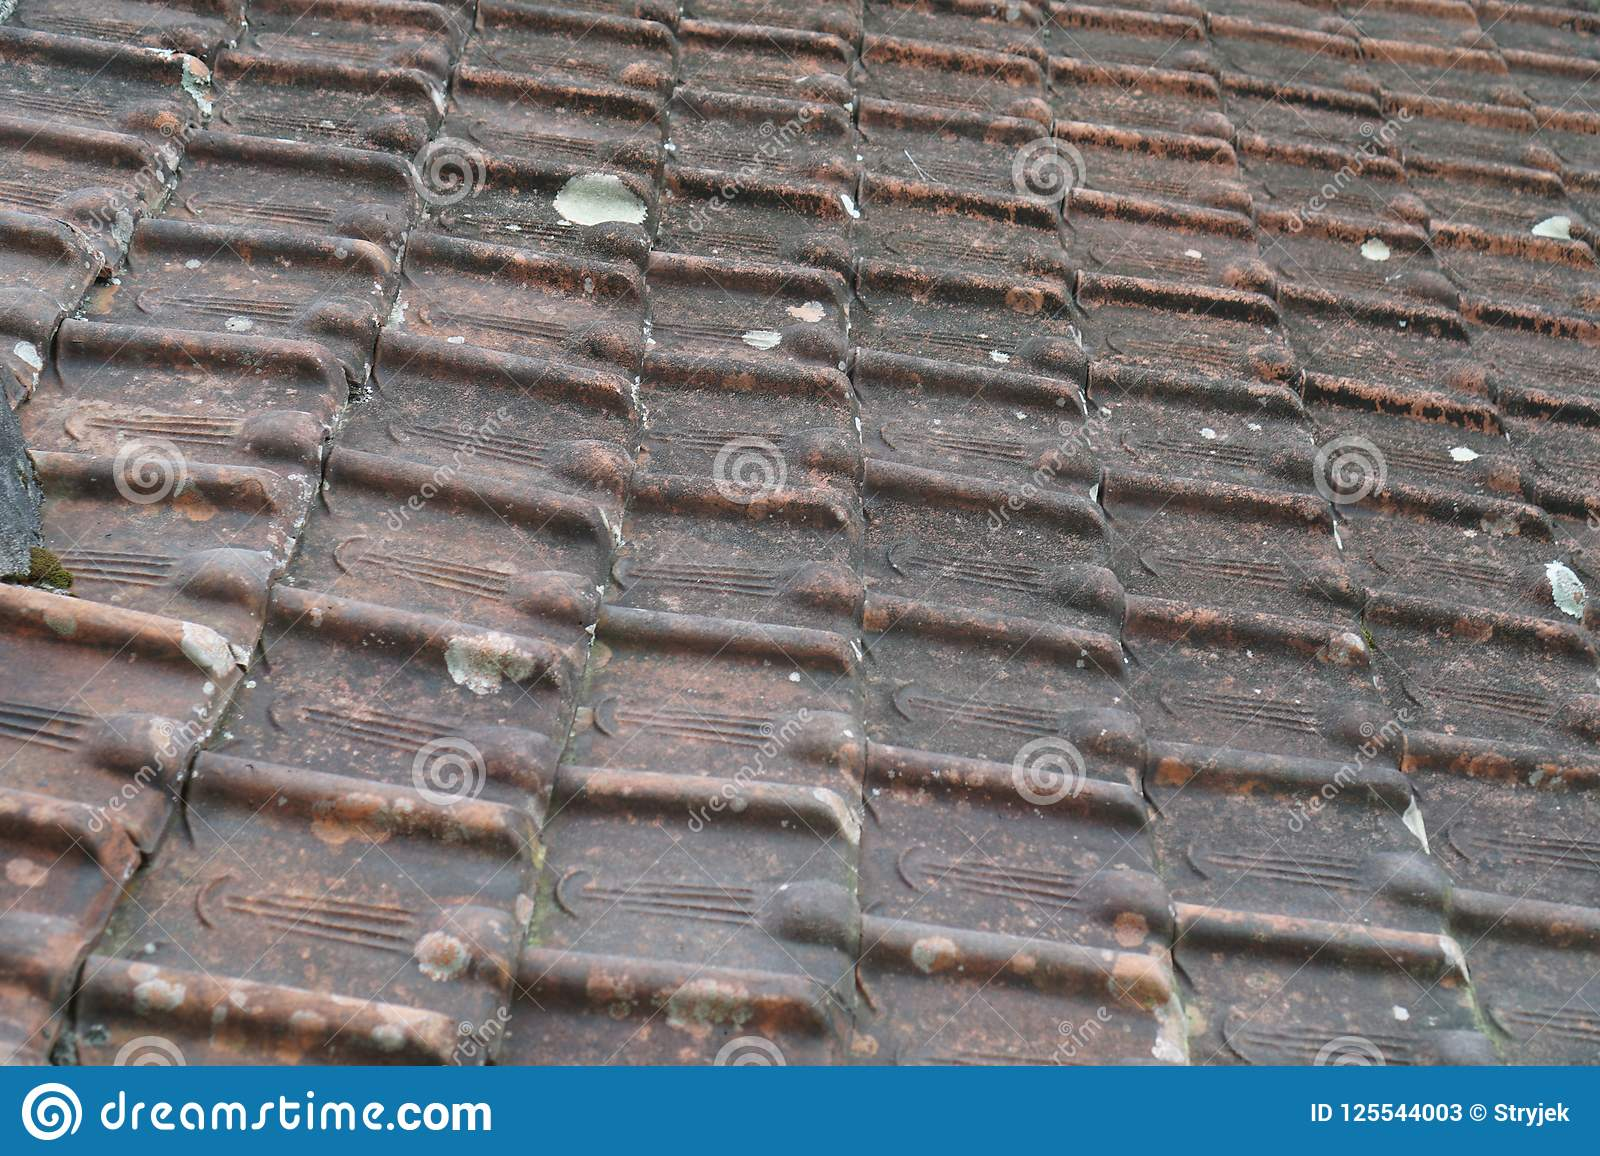 Old red clay tile roof stock image. Image of ancient ...